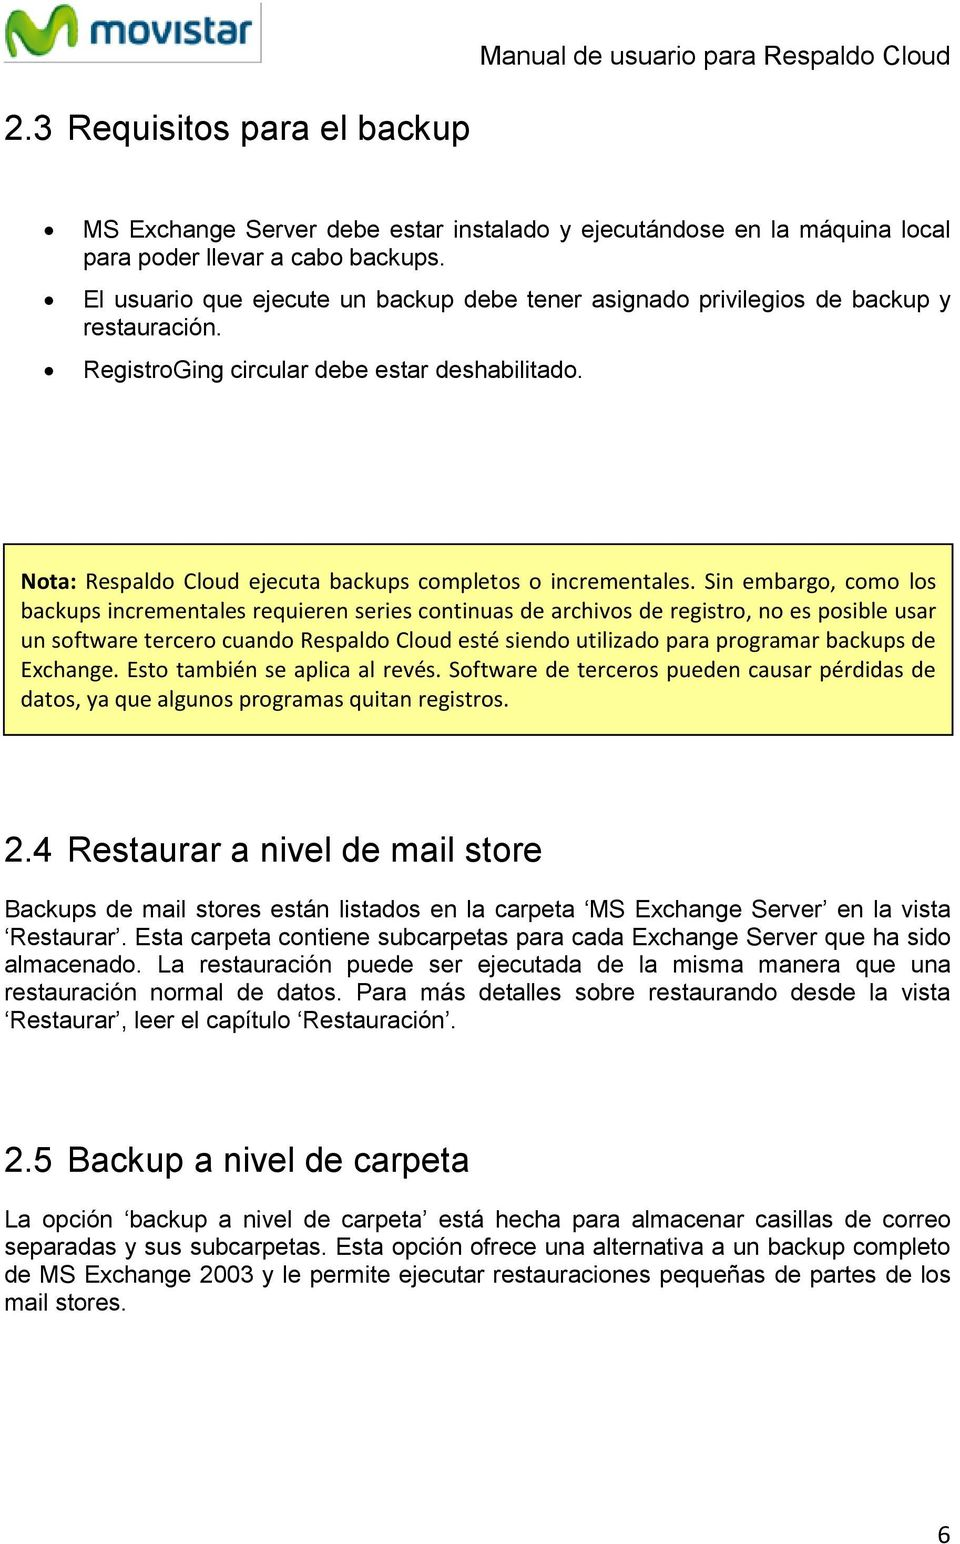 Nota: Respaldo Cloud ejecuta backups completos o incrementales.